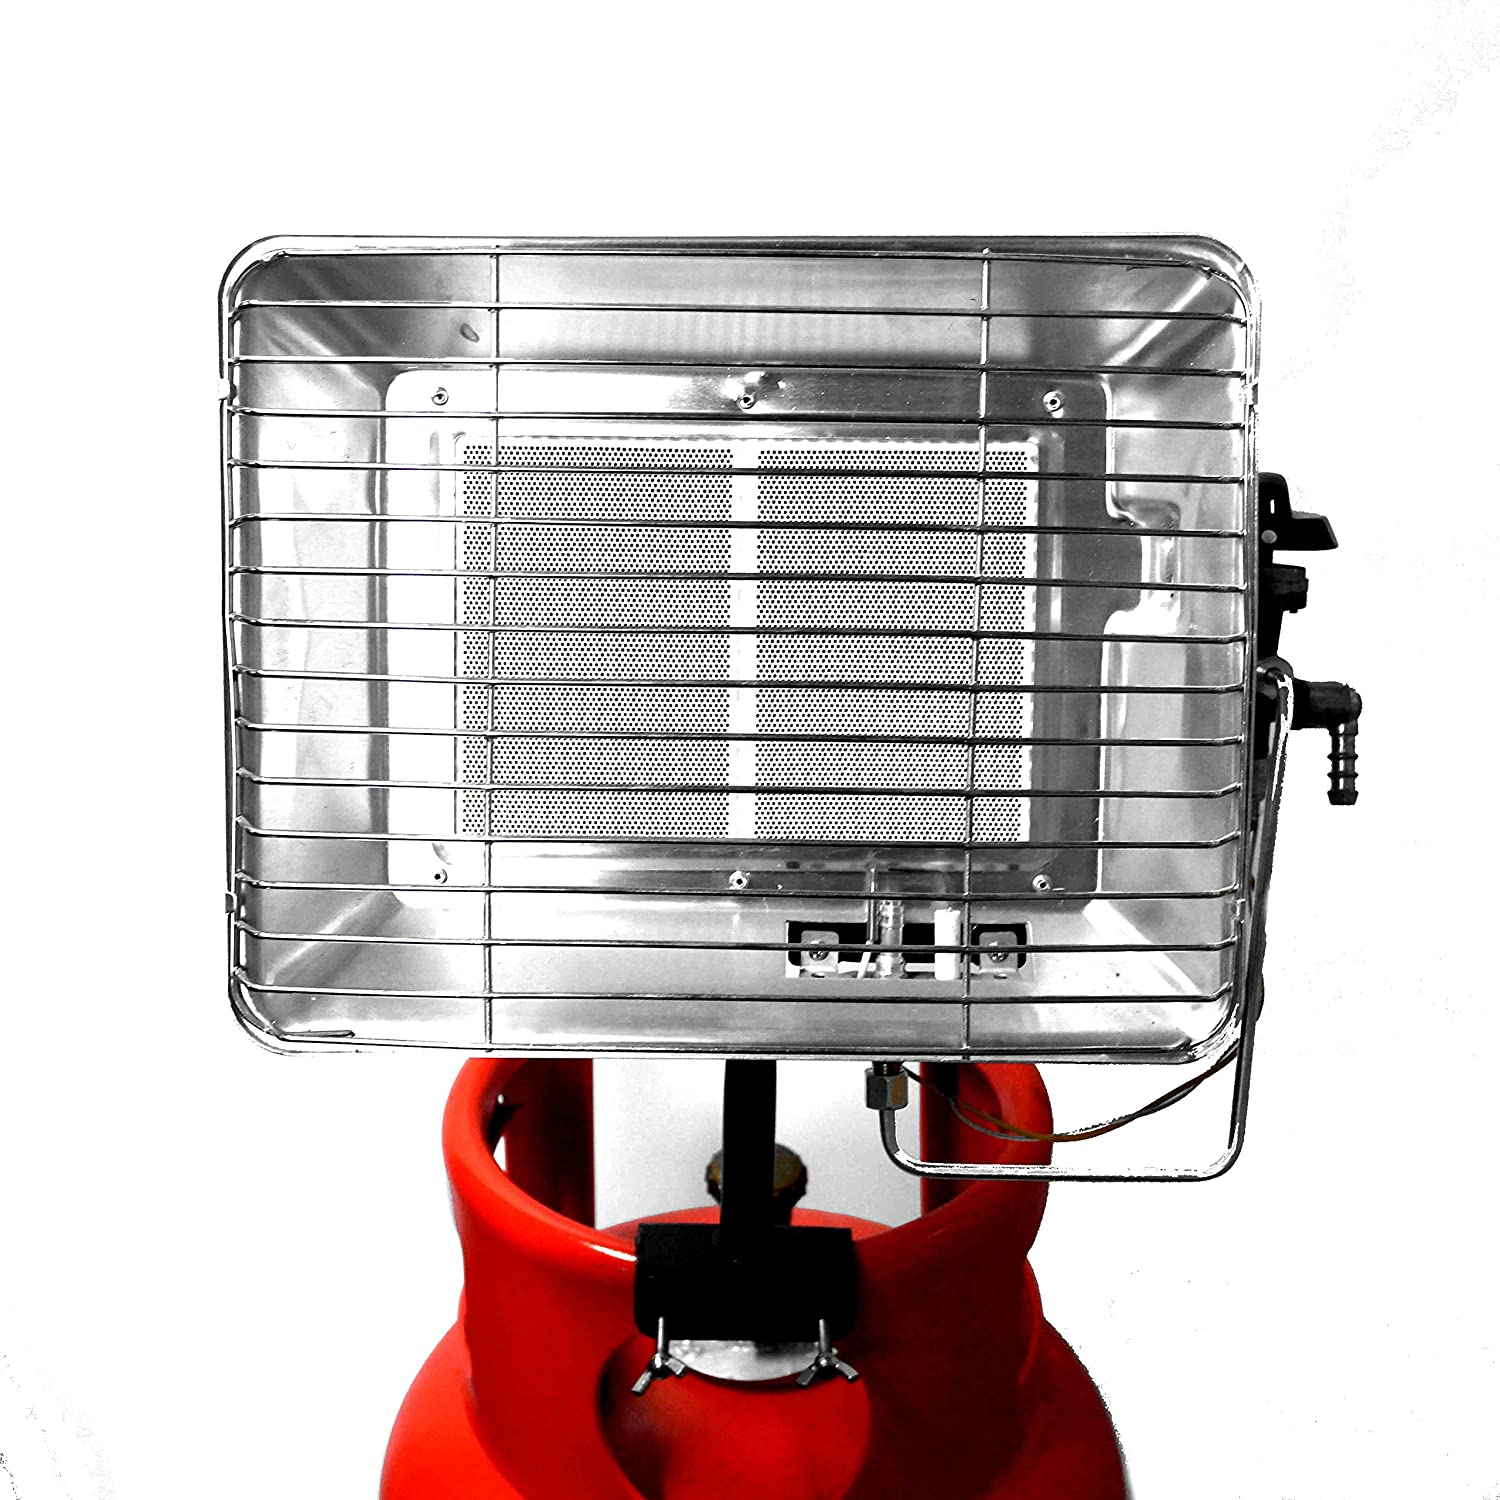 Project-03 4.4kw Bottle Mounted Gas Heater With Pilot, Flame Fail Safety Device & ignition